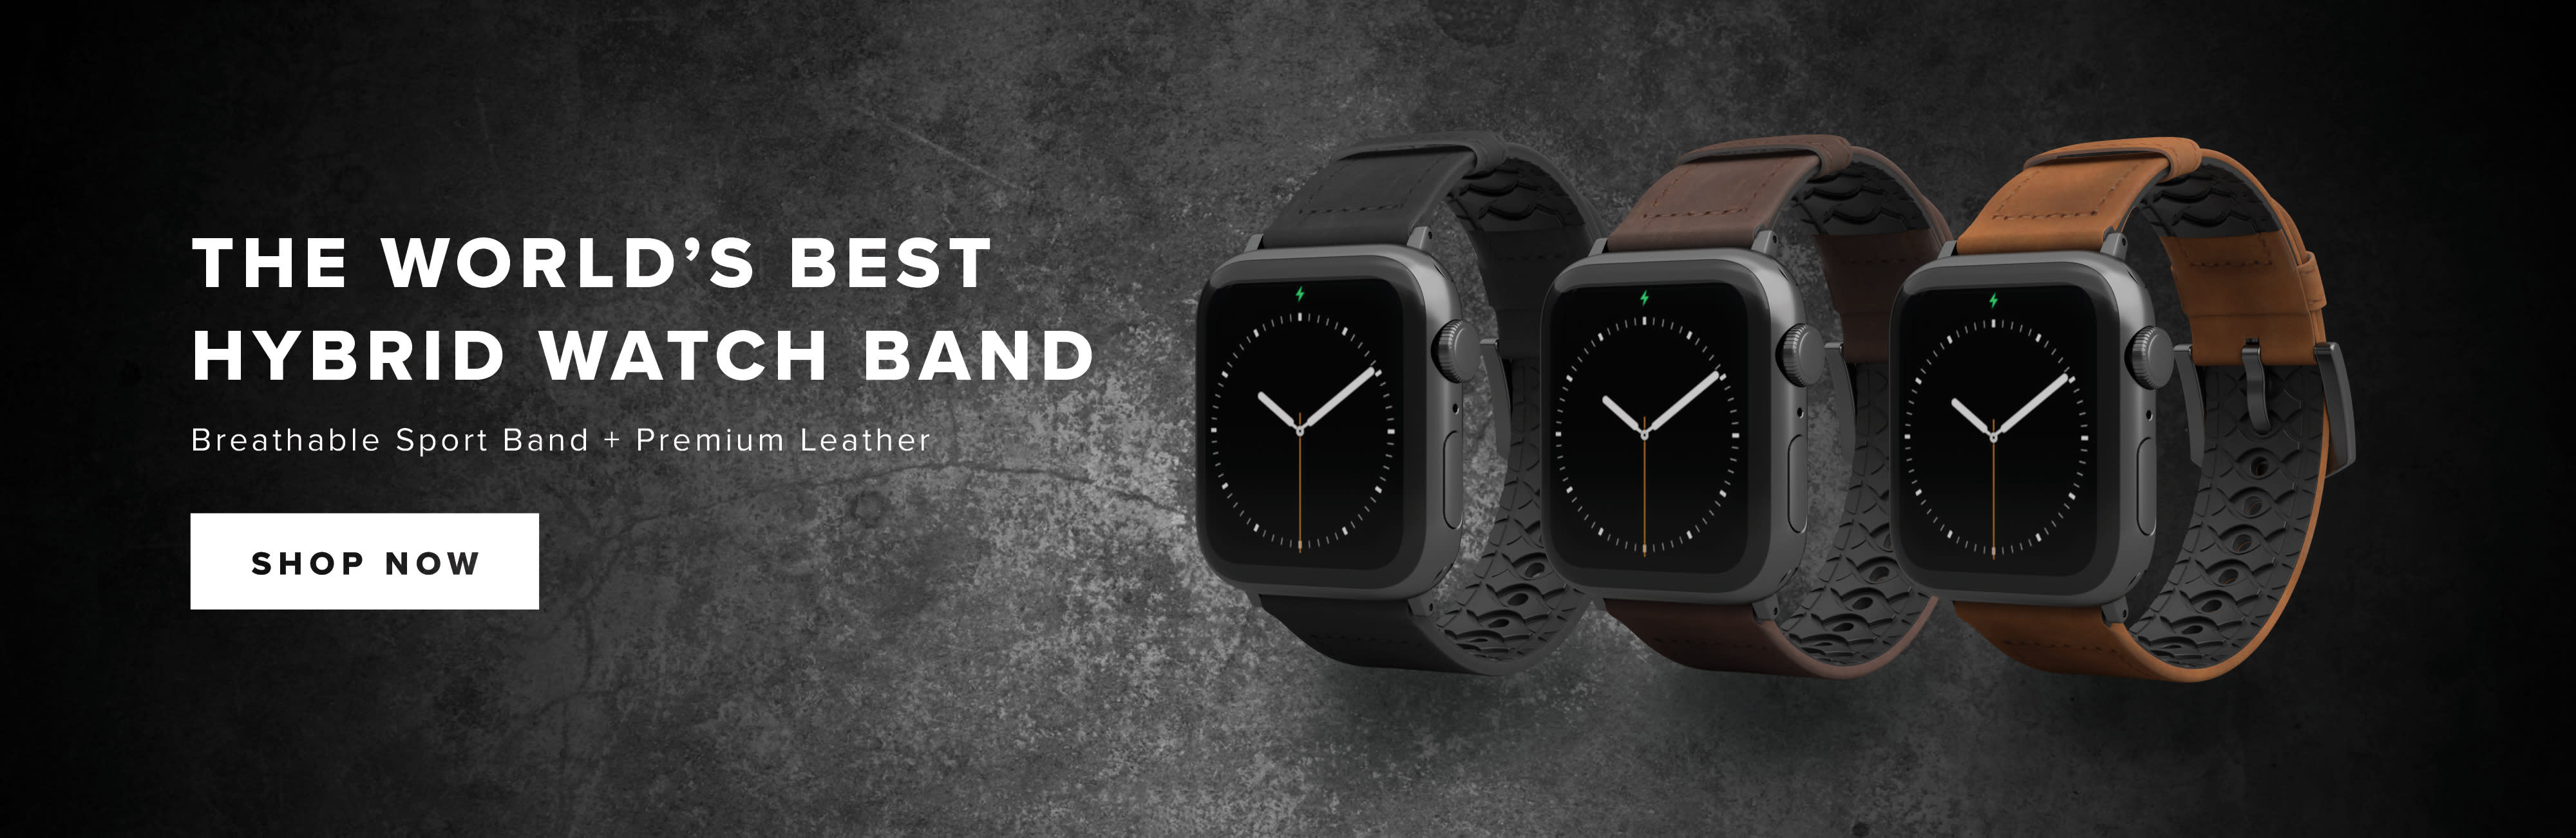 Shop The World's Best Hybrid Watch Band; Vulcan Leather Watch Bands